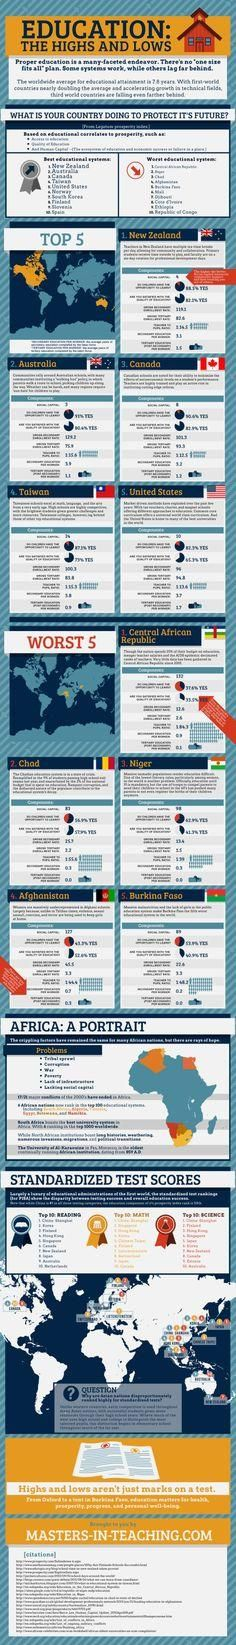 Education: The Highs and Lows[INFOGRAPHIC]